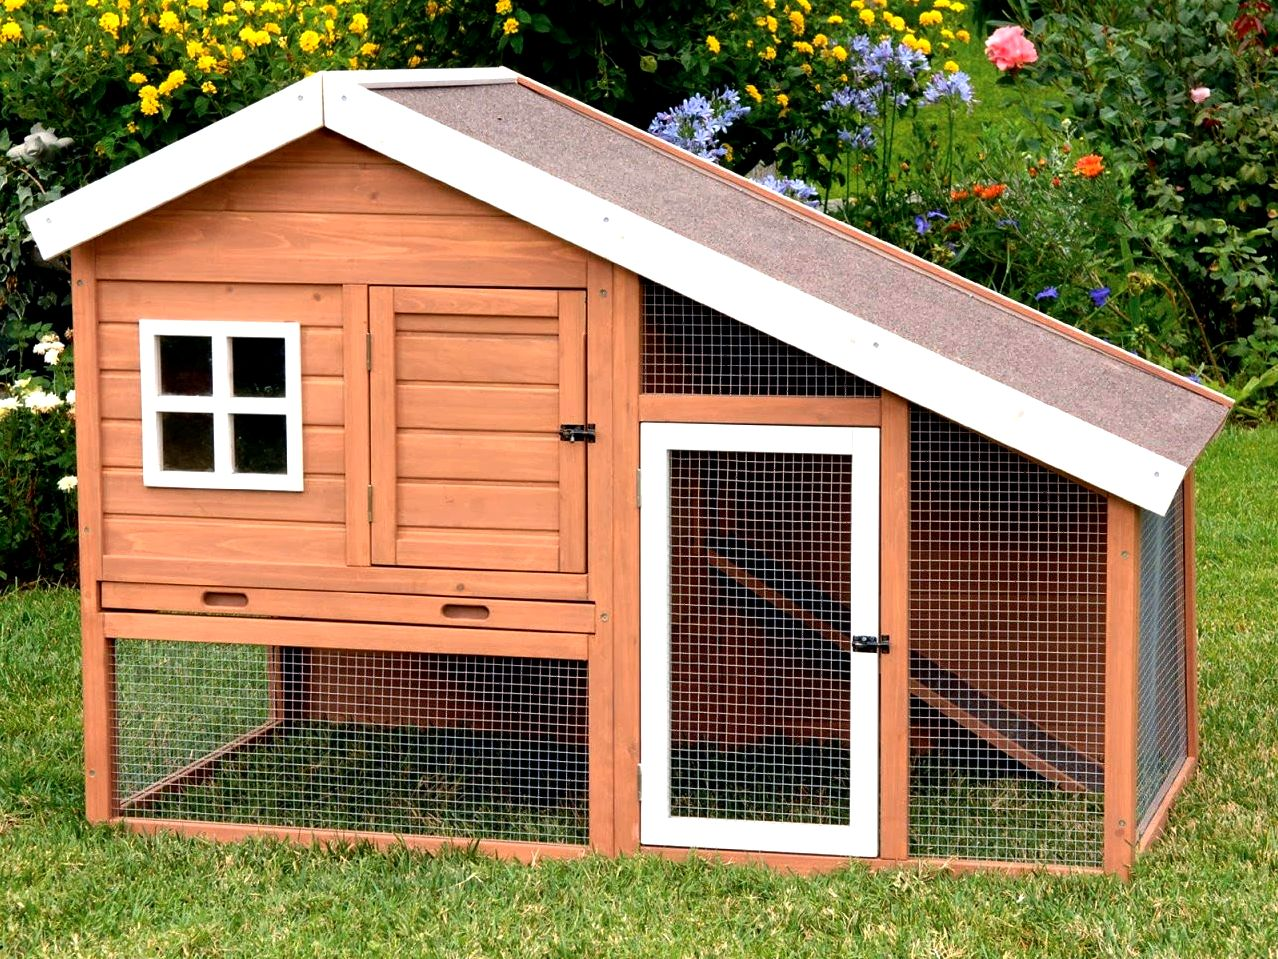 Chicken house plans | Chicken coop plans manual